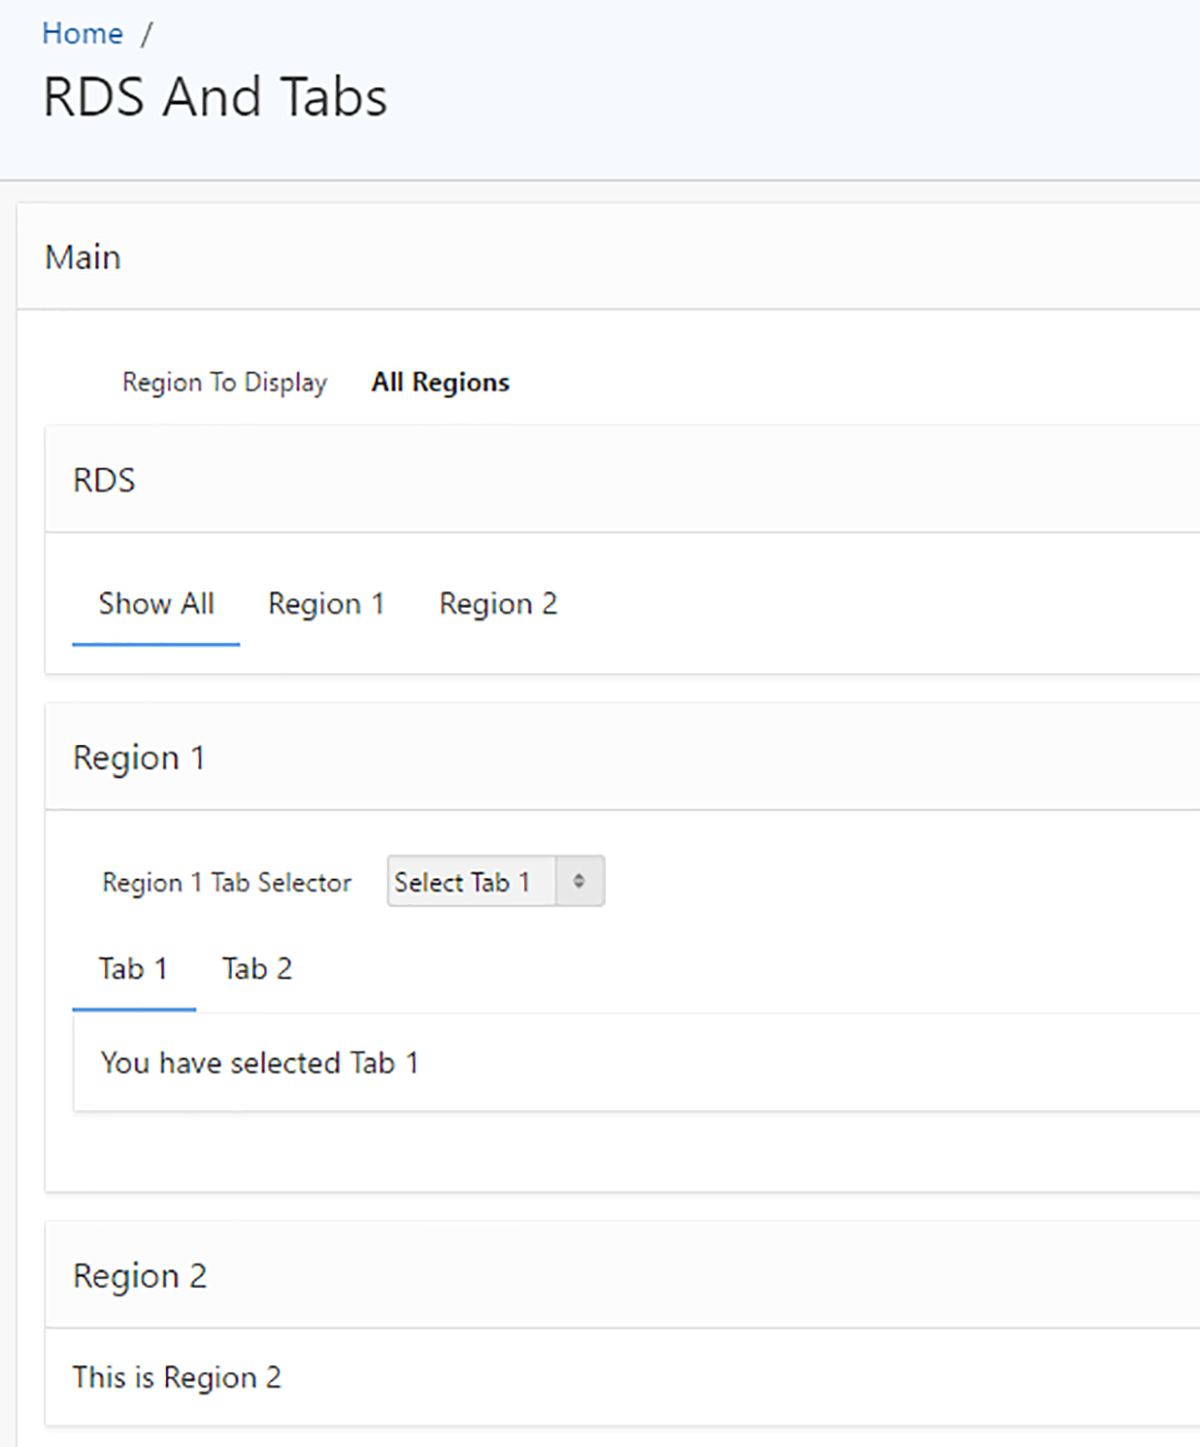 Dynamic Selection of Tabs and Region Display Selectors in